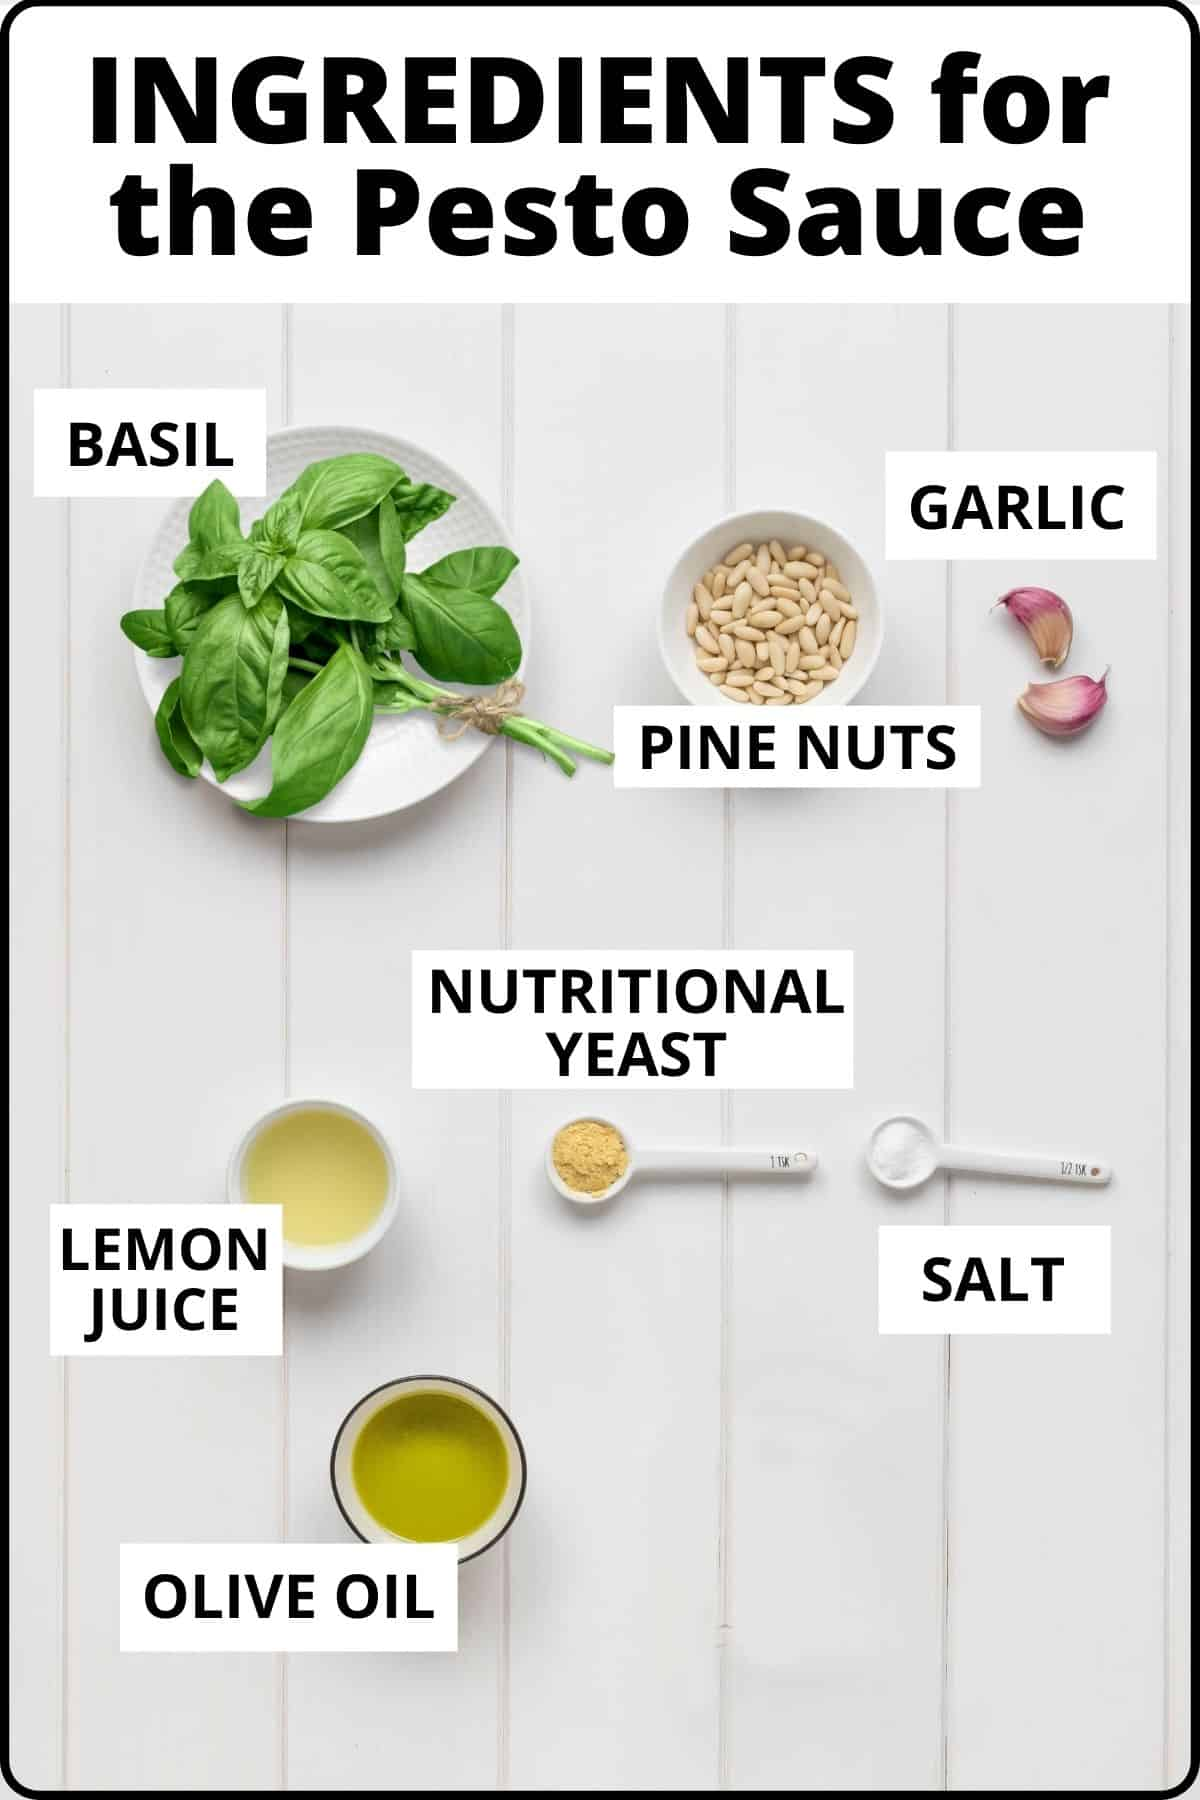 Ingredients to make the Vegan Pesto Sauce. Just a few basic ingredients and ready in 5 minutes!